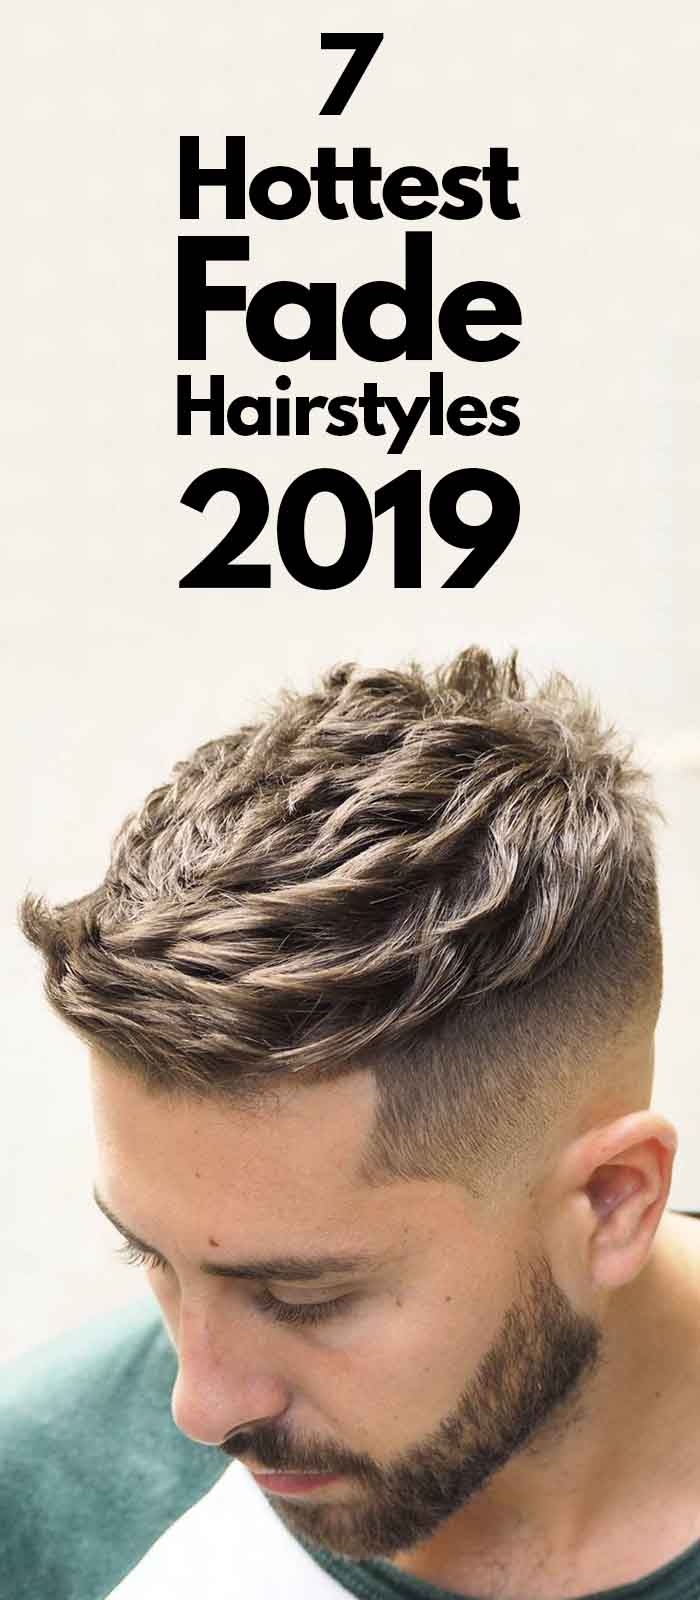 Fade Hairstyles For Men 2019.